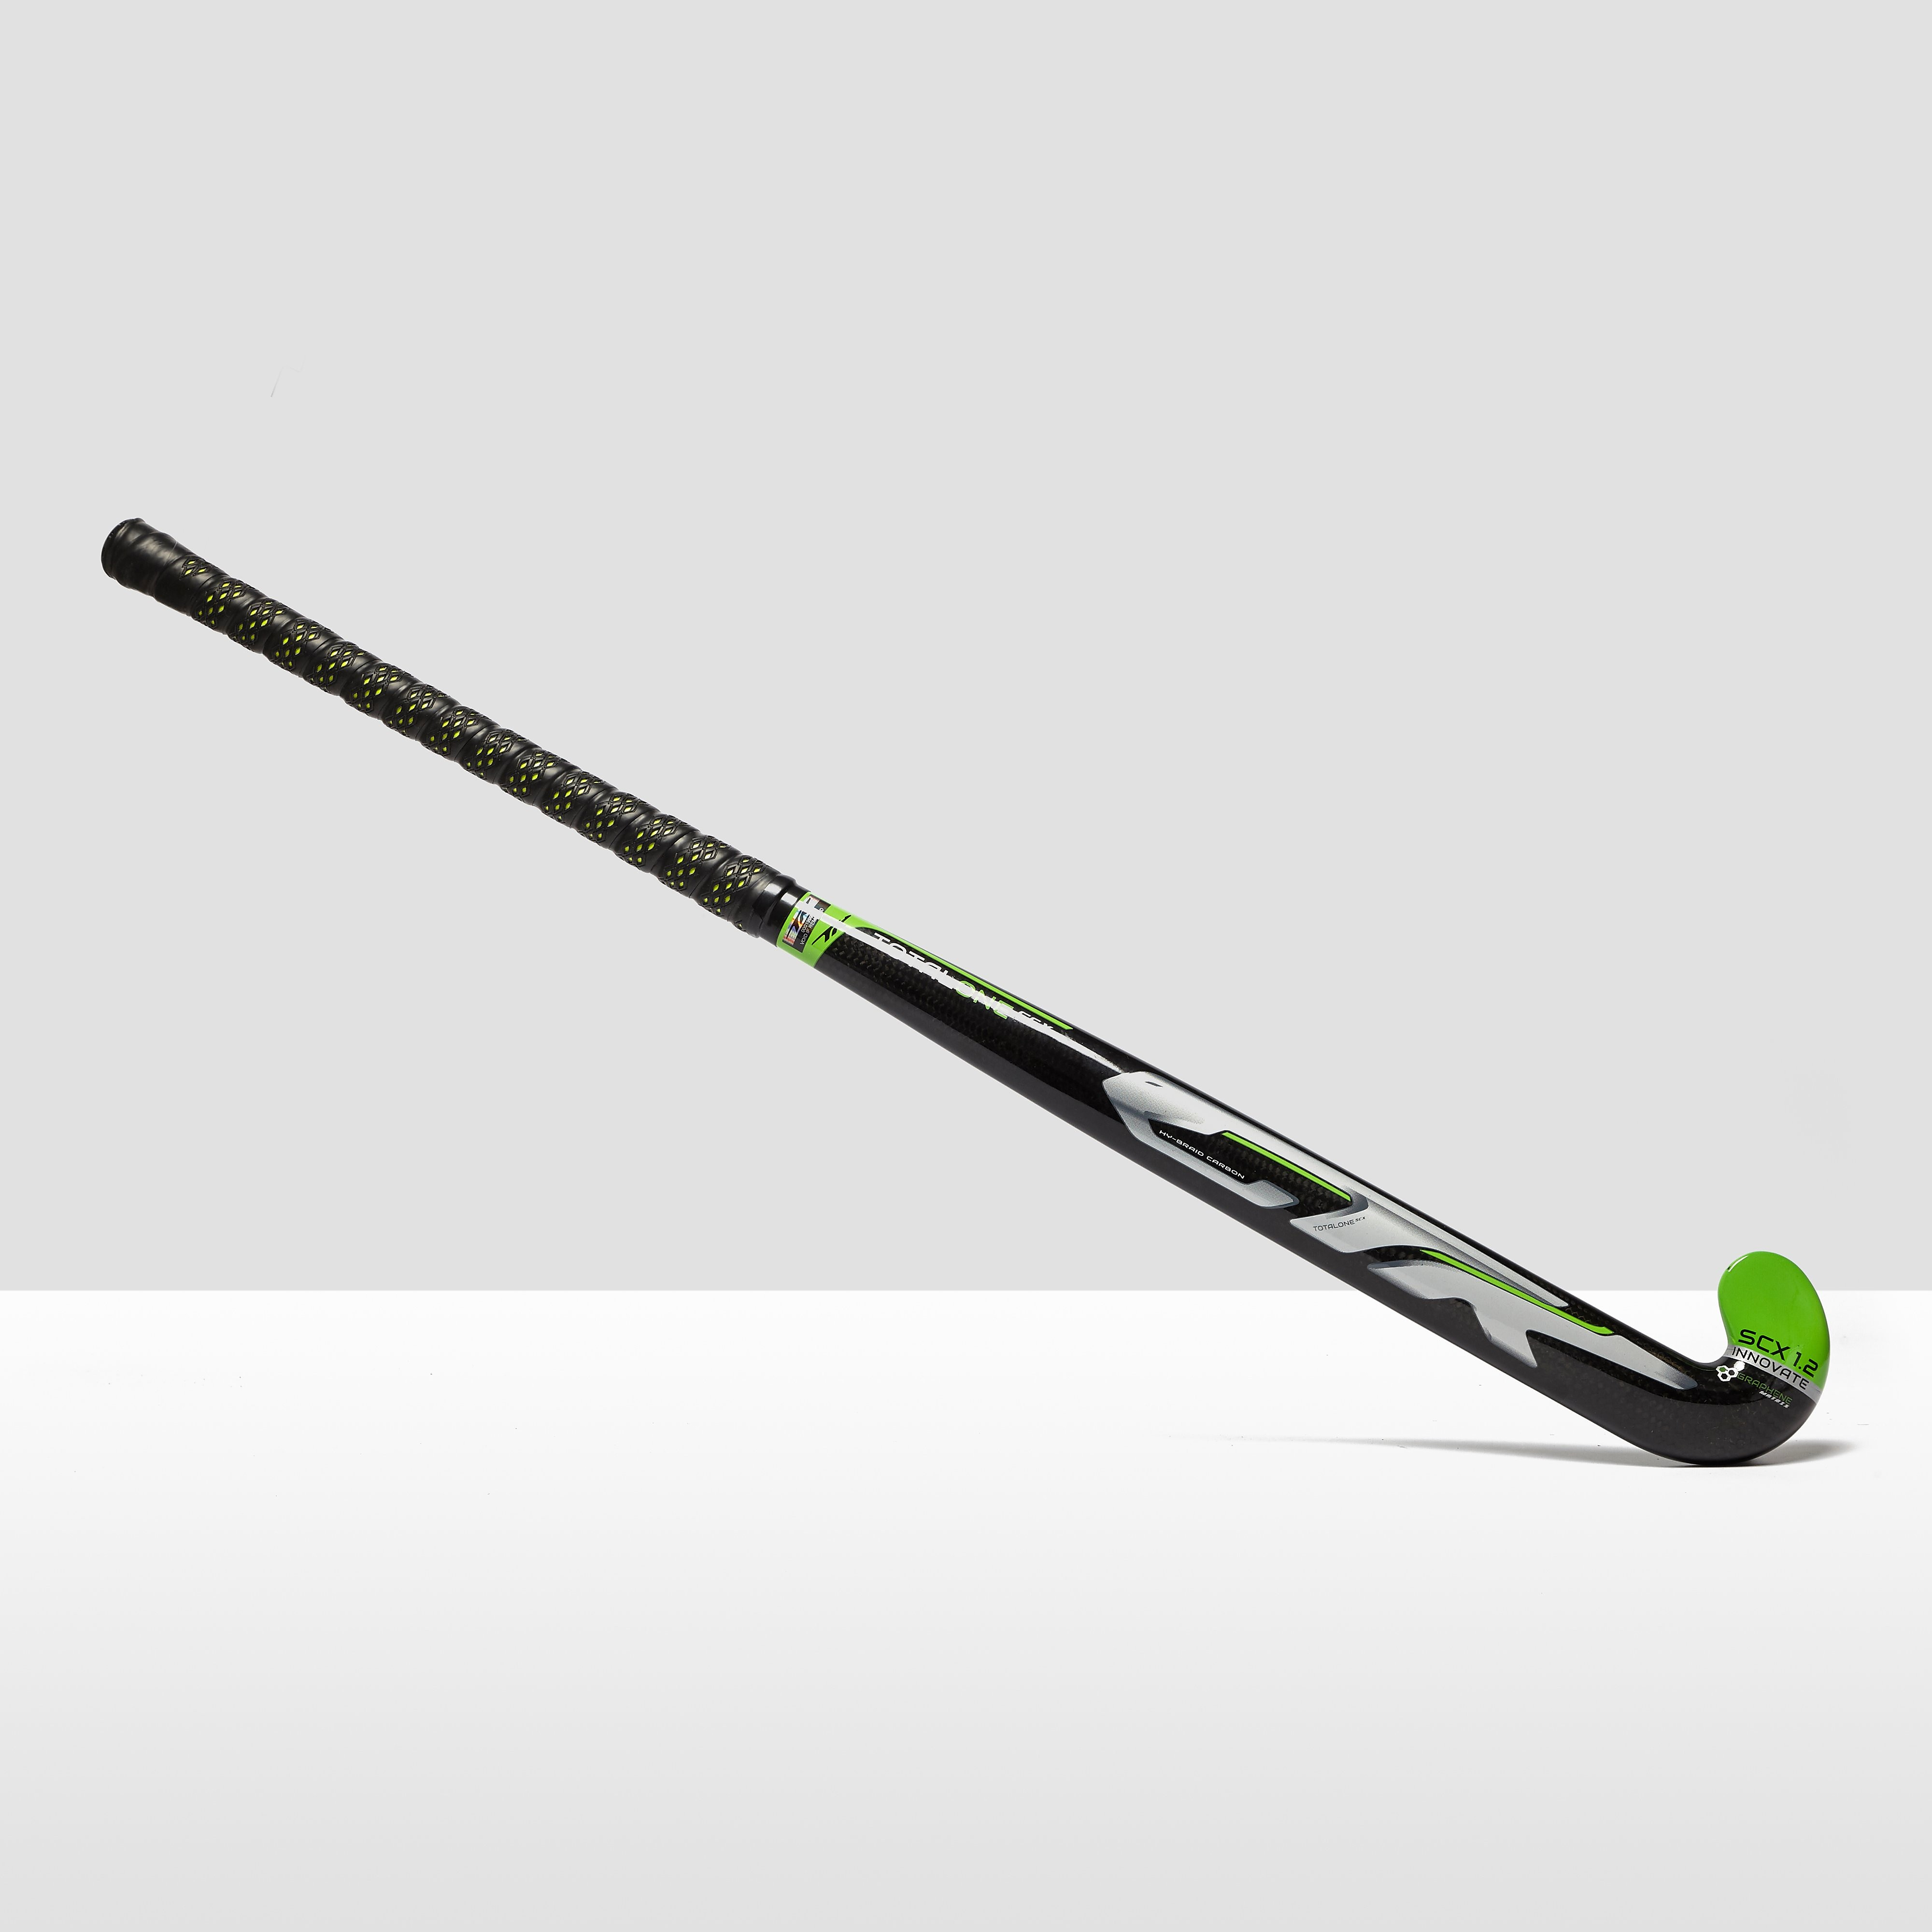 TK Hockey One Scx 1.2 Innovate Hockey Stick